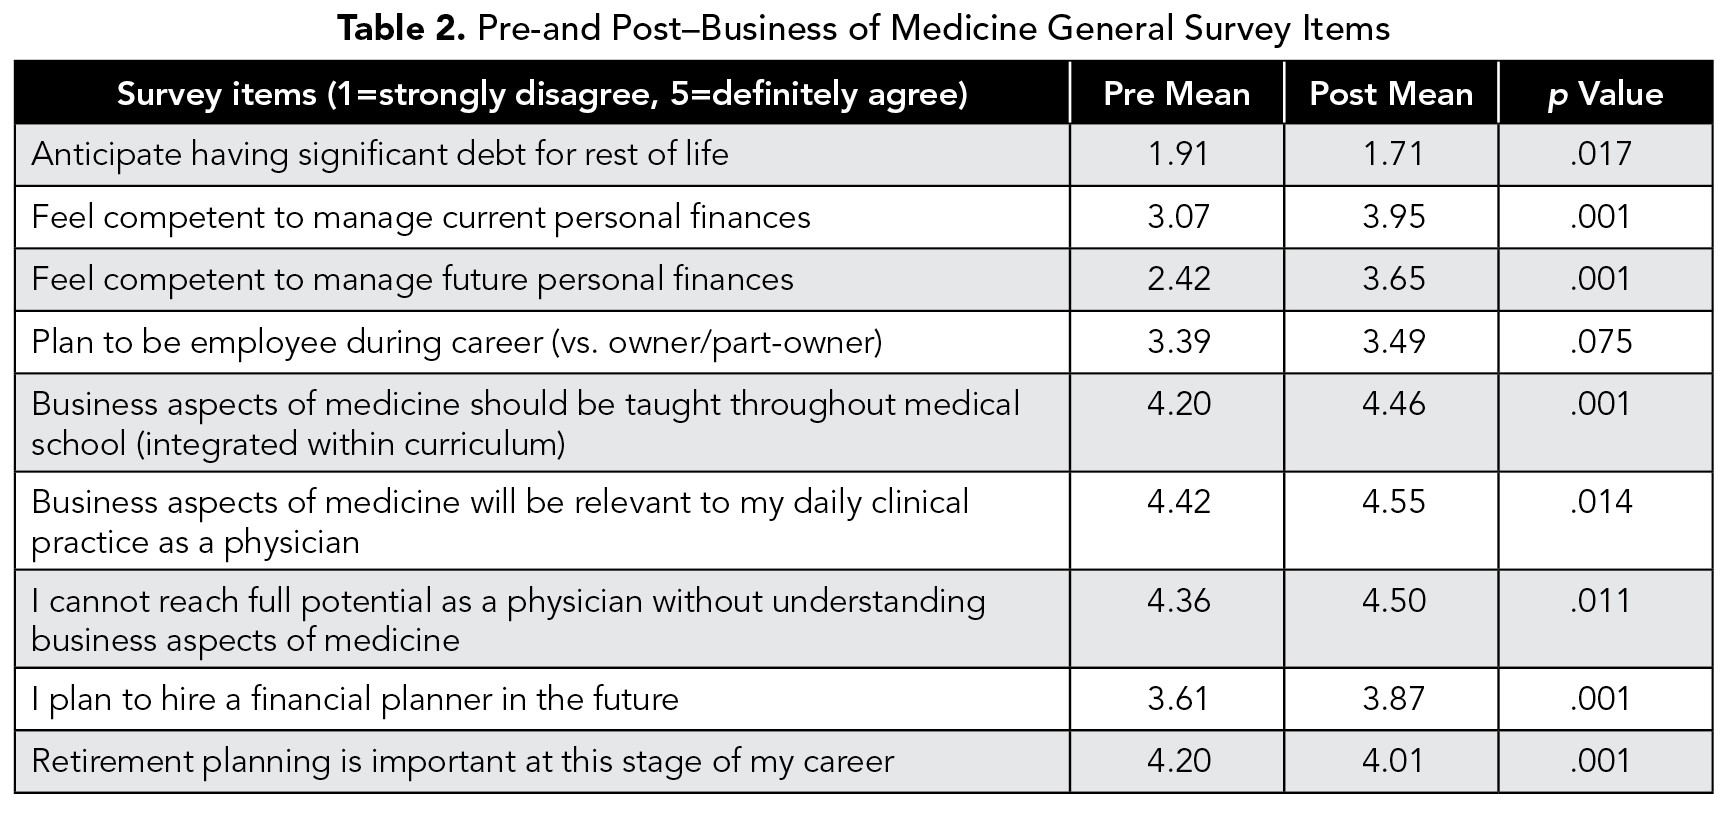 TABLE 2. Pre-and Post-Business of Medicine General Survey Items